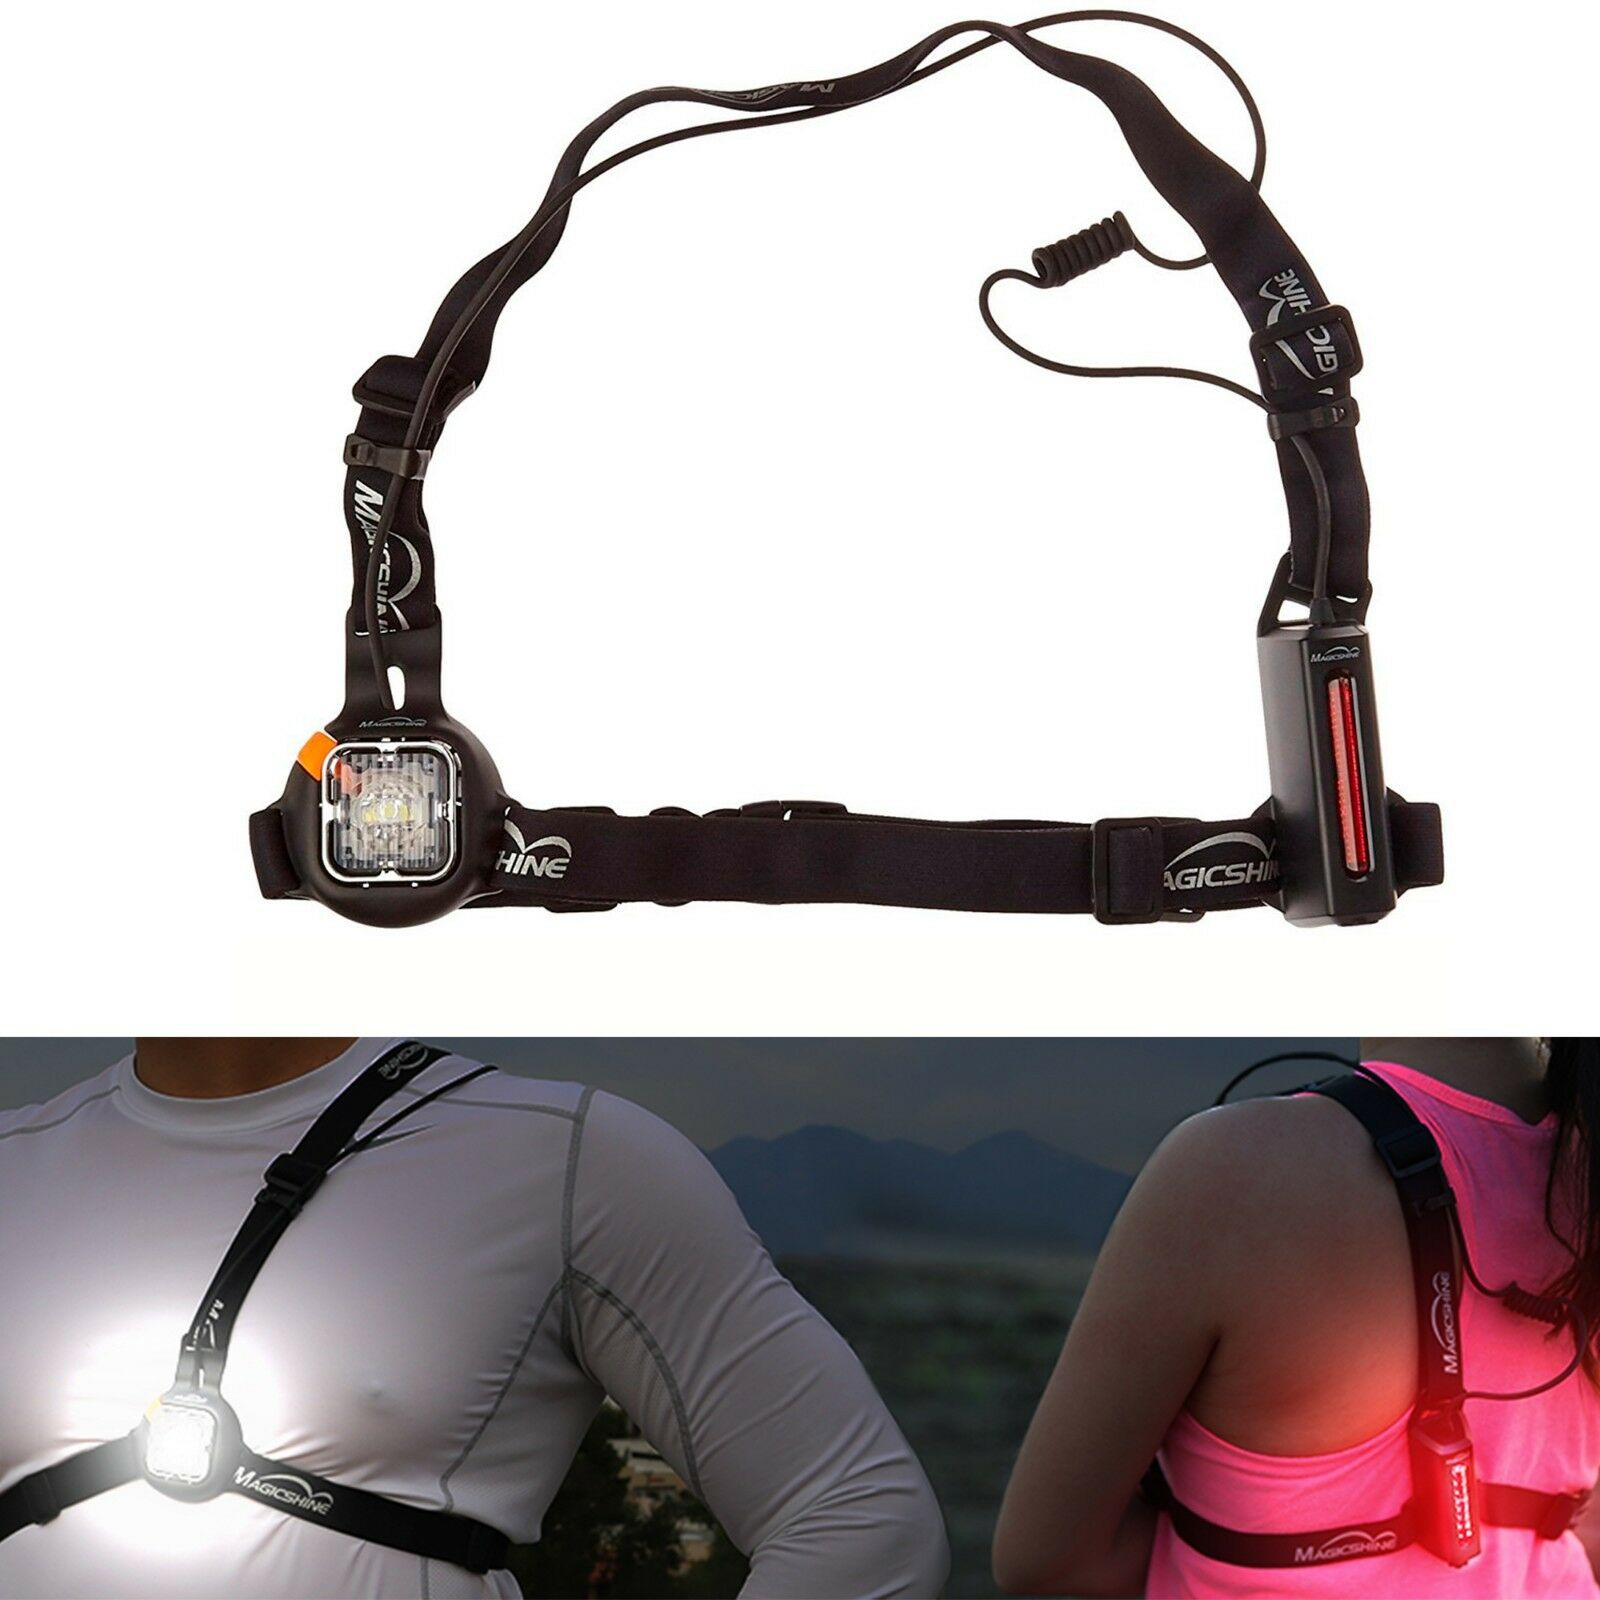 Magicshine MJ-892 USB Rechargeable Running Light Safety & Reflective Light